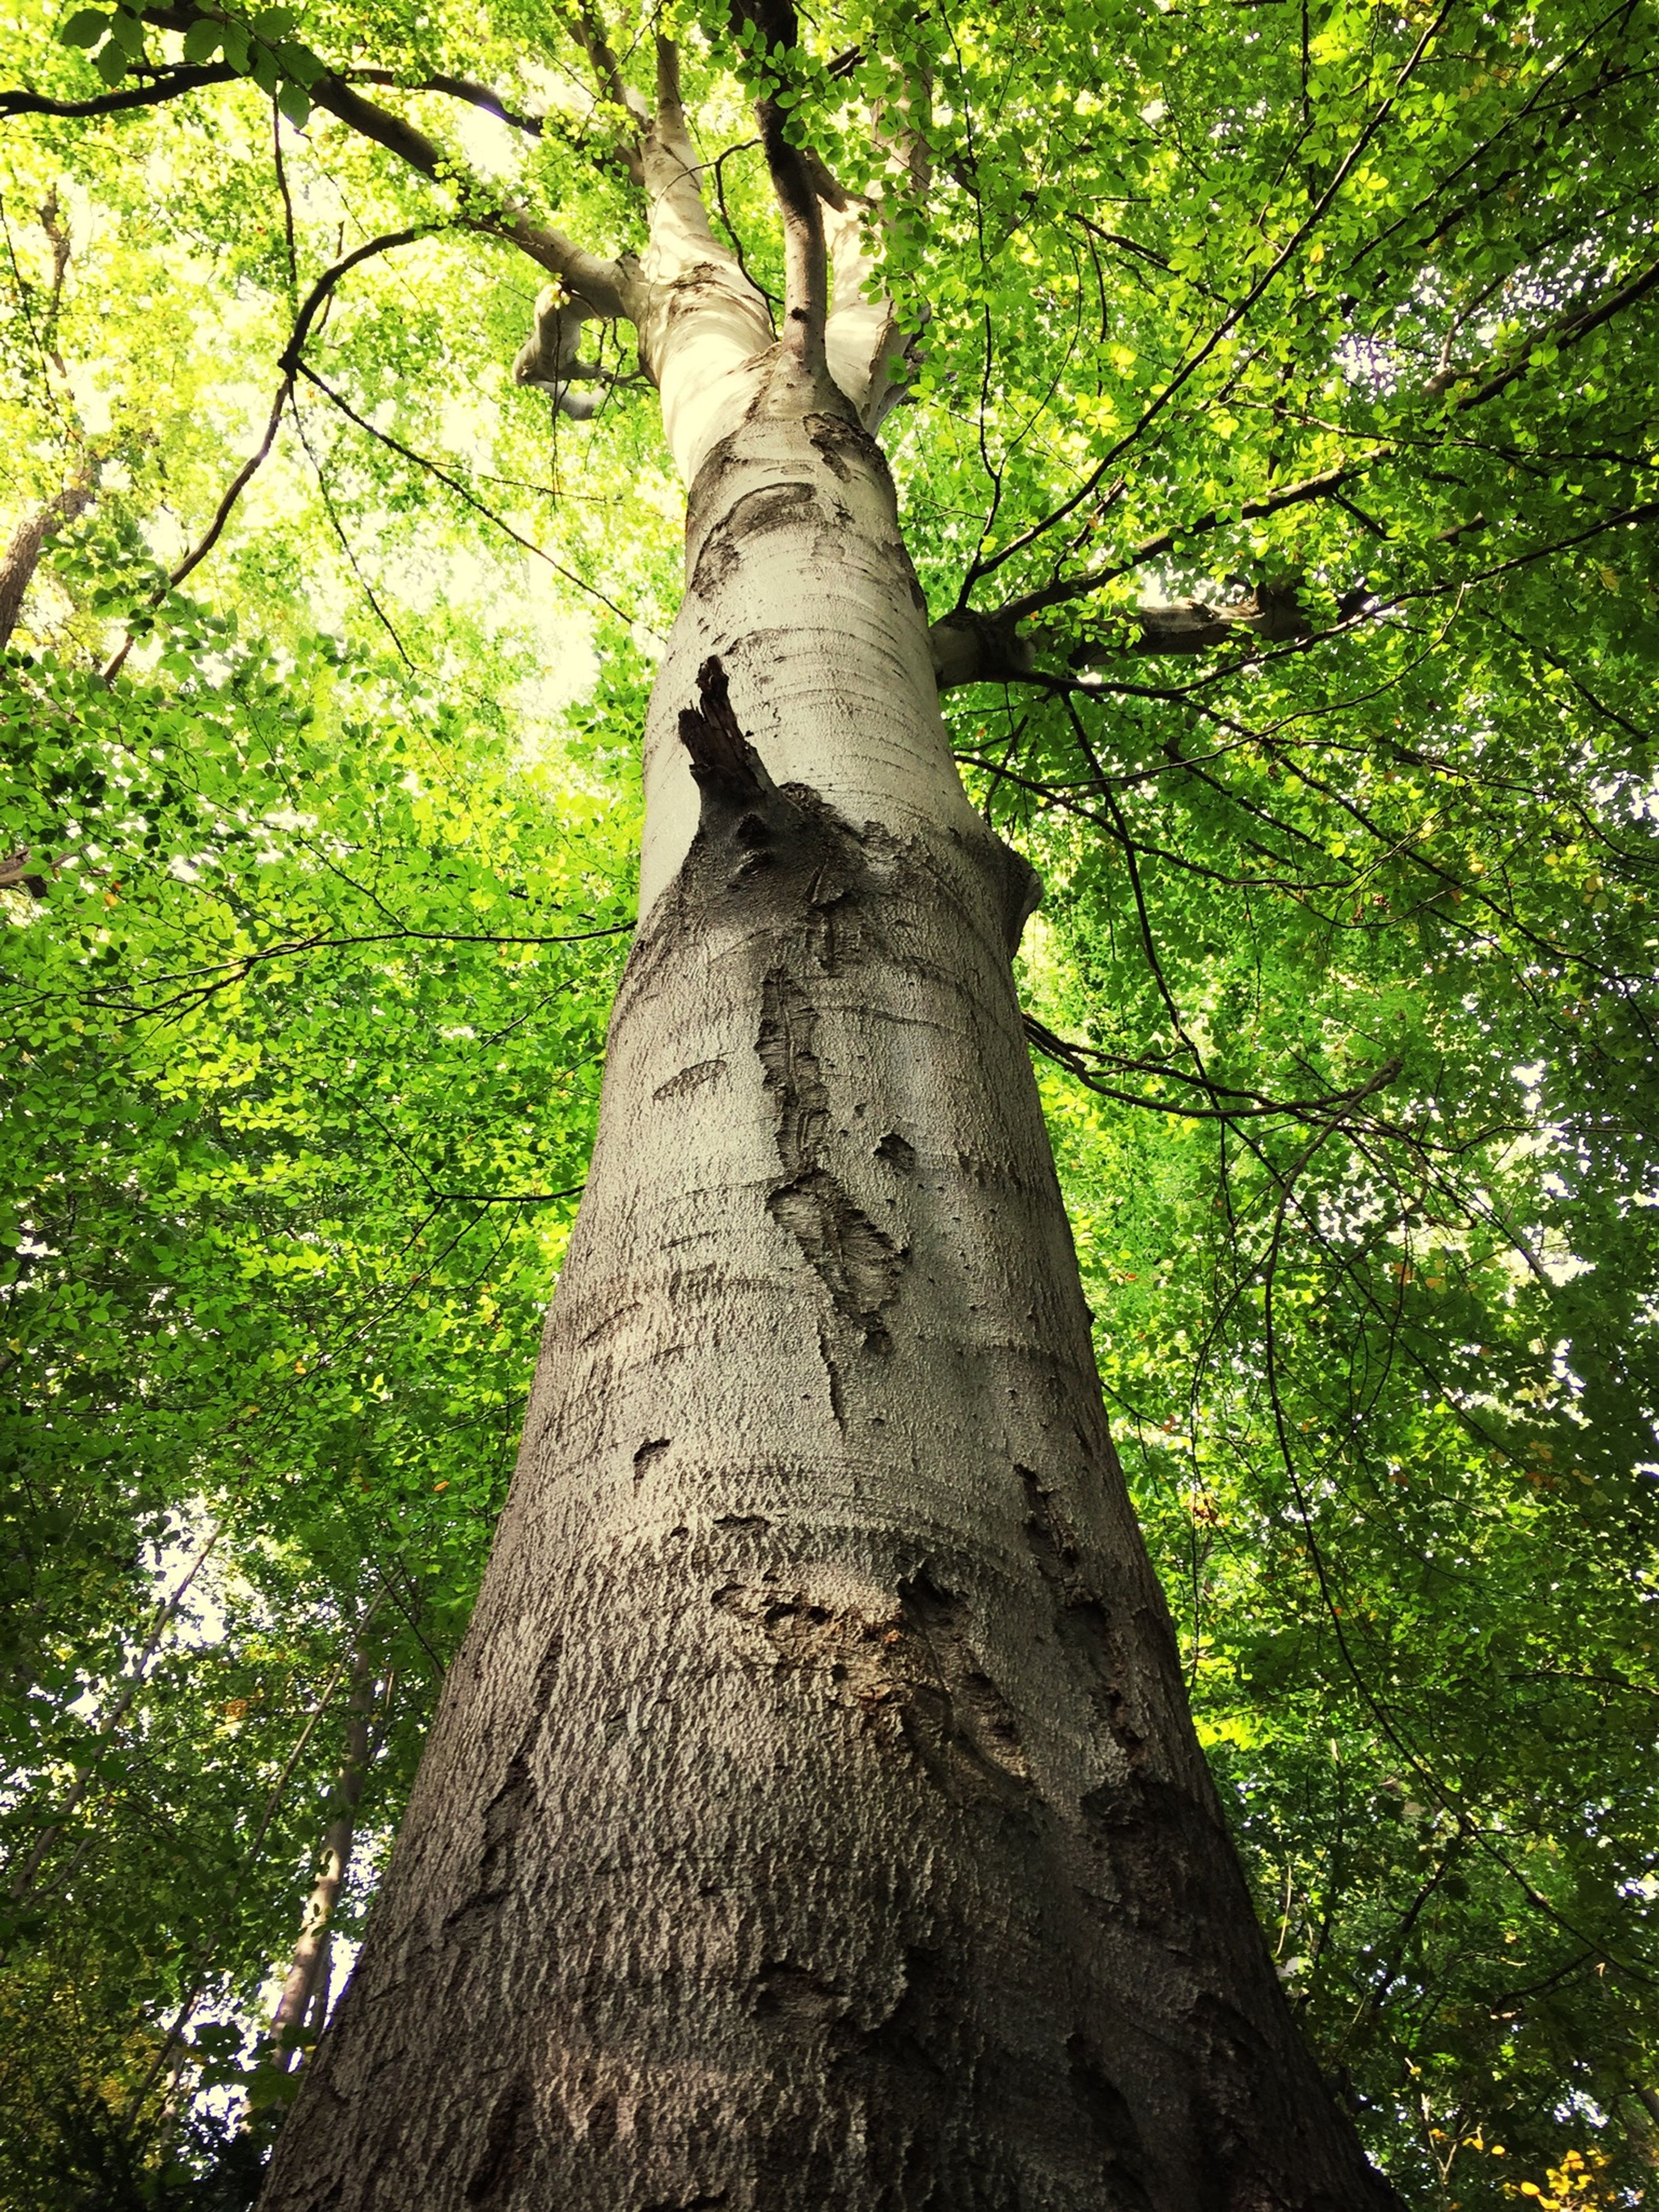 tree, tree trunk, branch, low angle view, growth, forest, nature, green color, tranquility, bark, beauty in nature, day, outdoors, wood - material, no people, sunlight, leaf, textured, green, woodland